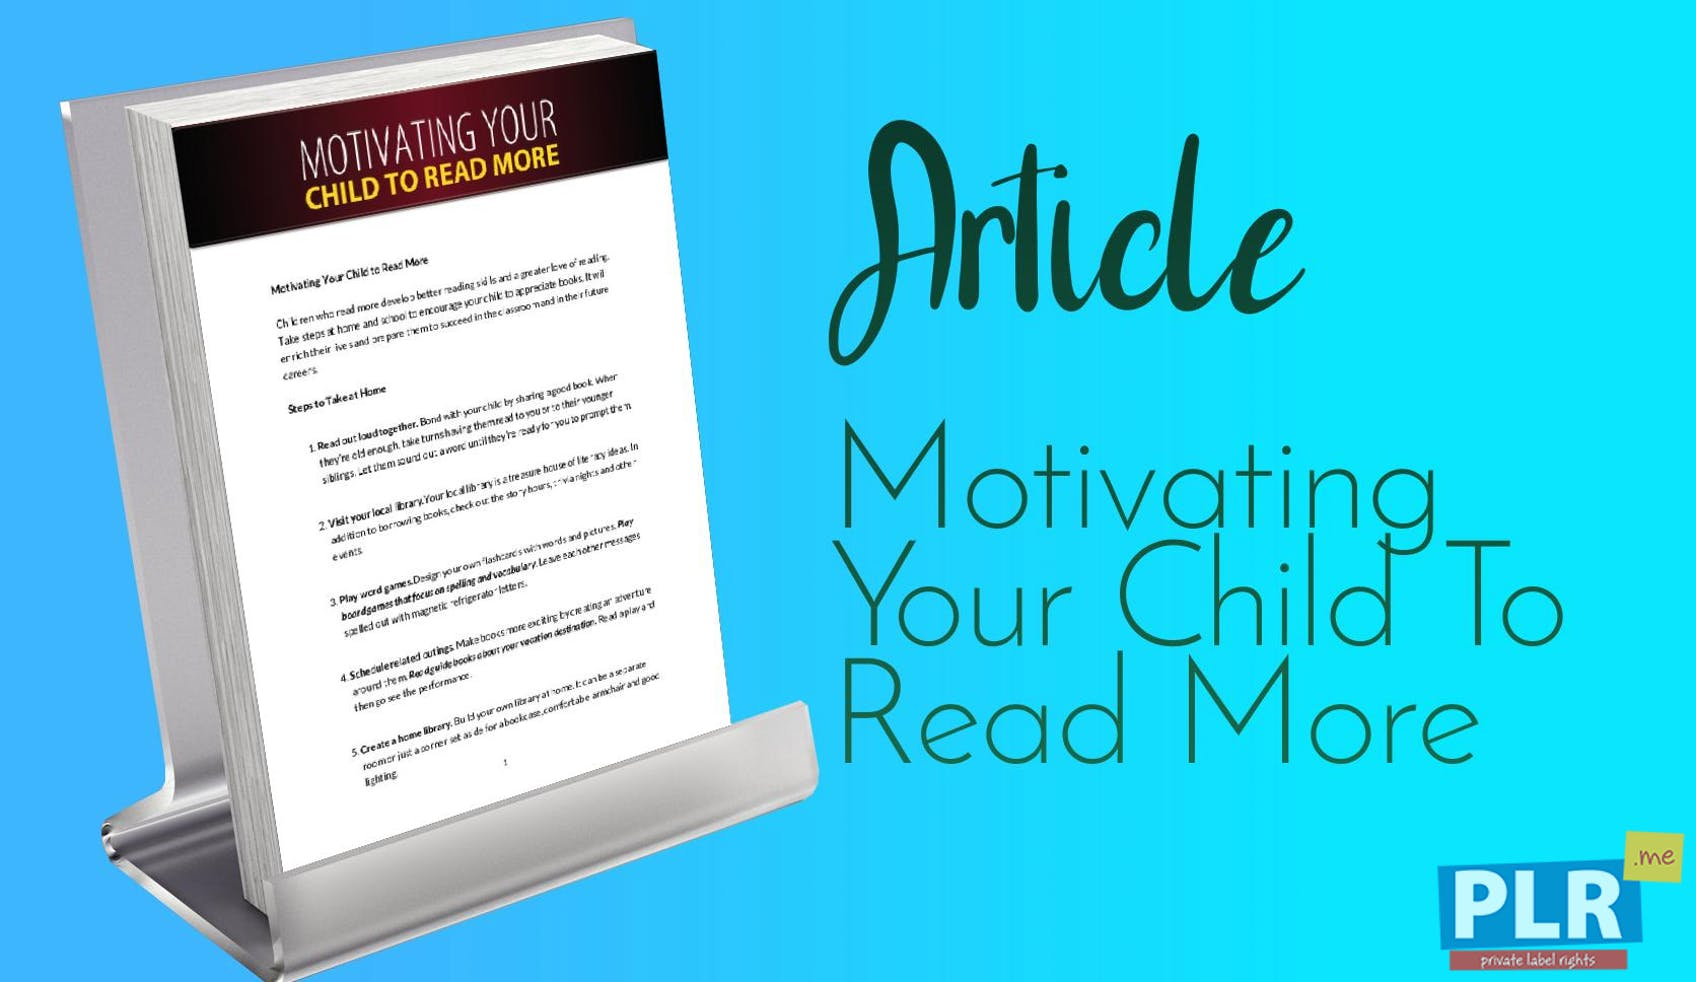 PLR Articles & Blog Posts - Motivating Your Child To Read More - PLR.me